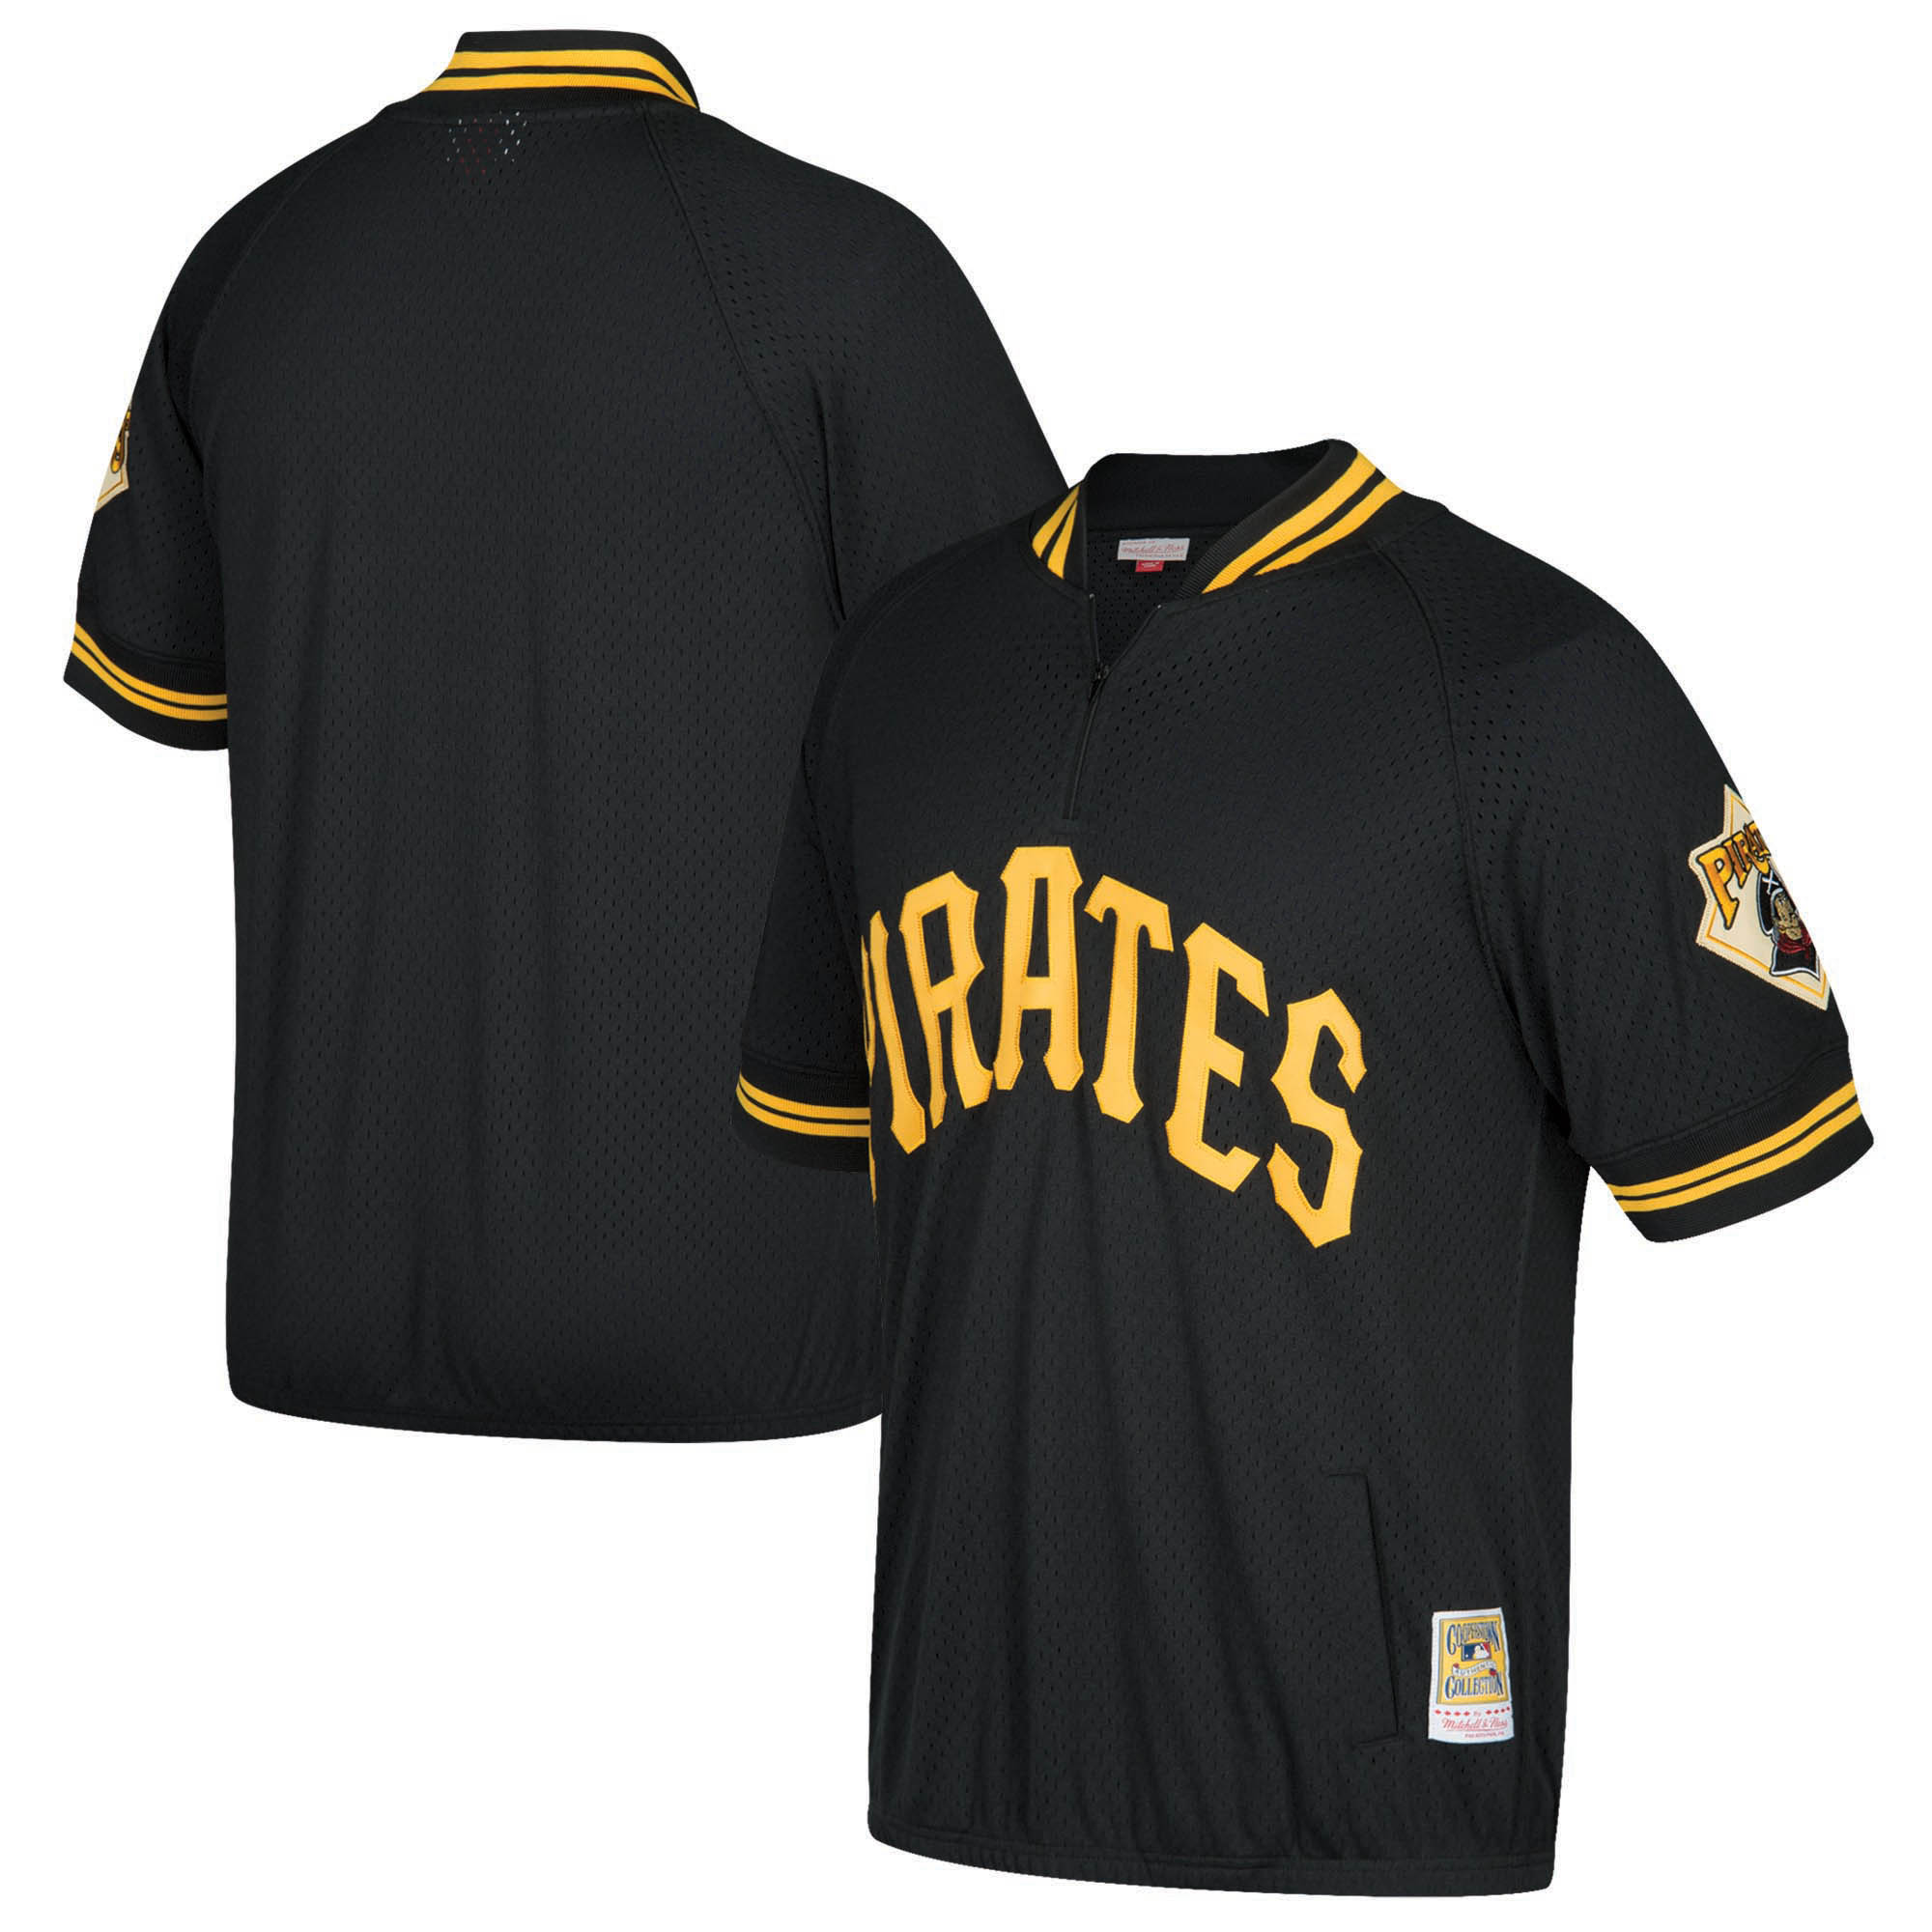 Pittsburgh Pirates Mitchell & Ness Cooperstown Collection Mesh Batting Practice Quarter-Zip Jersey - Black